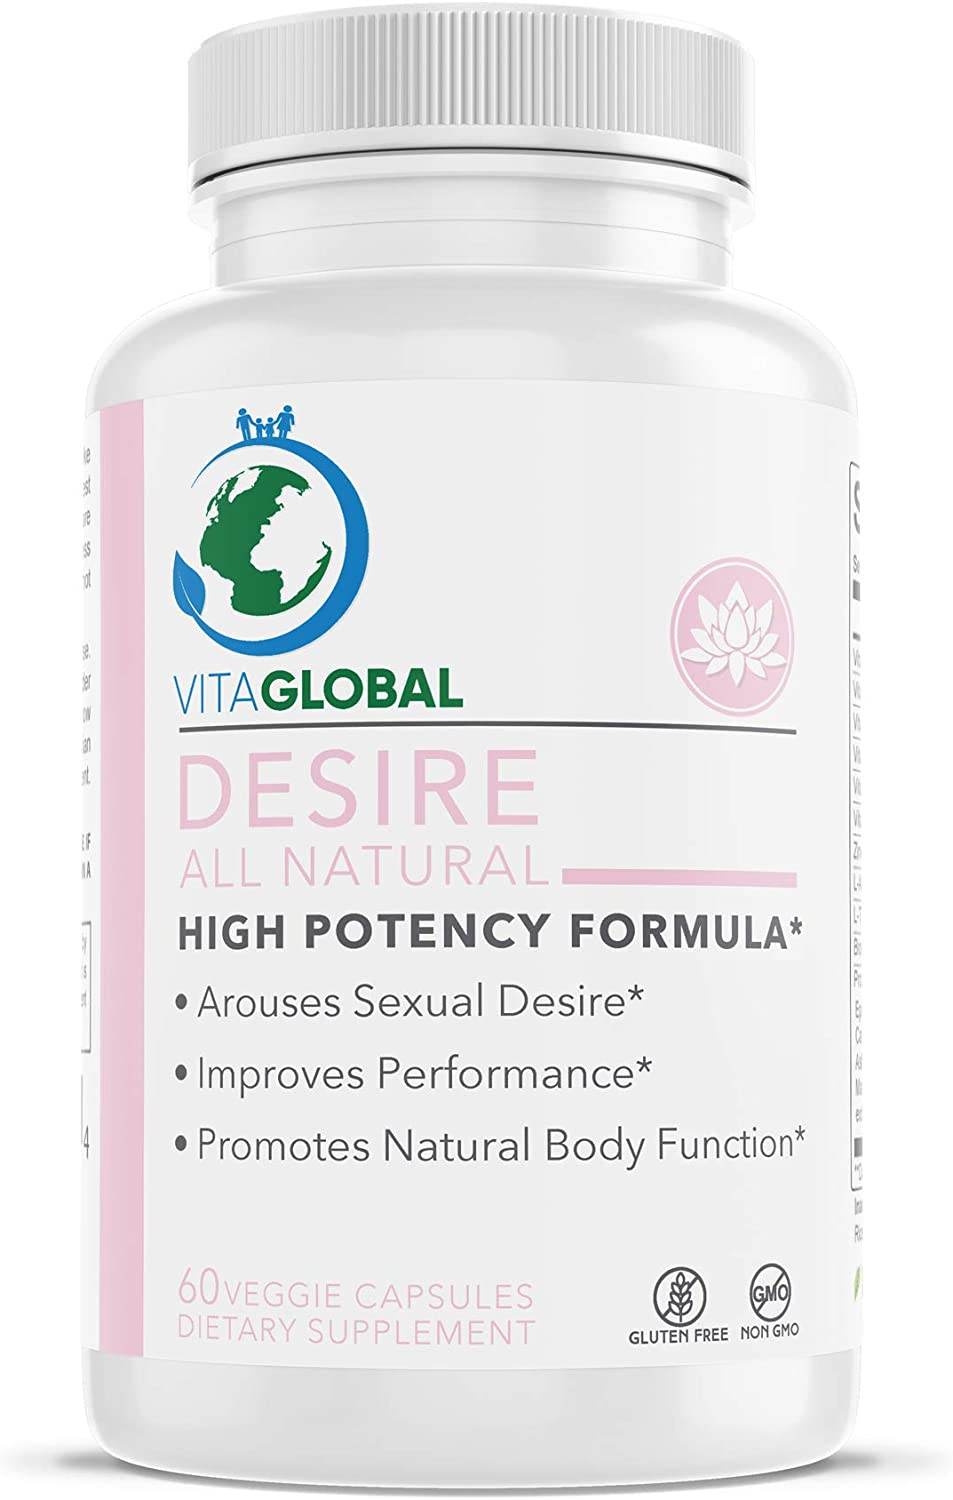 Desire All Natural High Potency Formula | Arouse Sexual Desire | Increase Performance, Confidence, Pleasure, Strength, Energy | Promote Natural Body Function | by VITAGLOBAL 60 Capsules